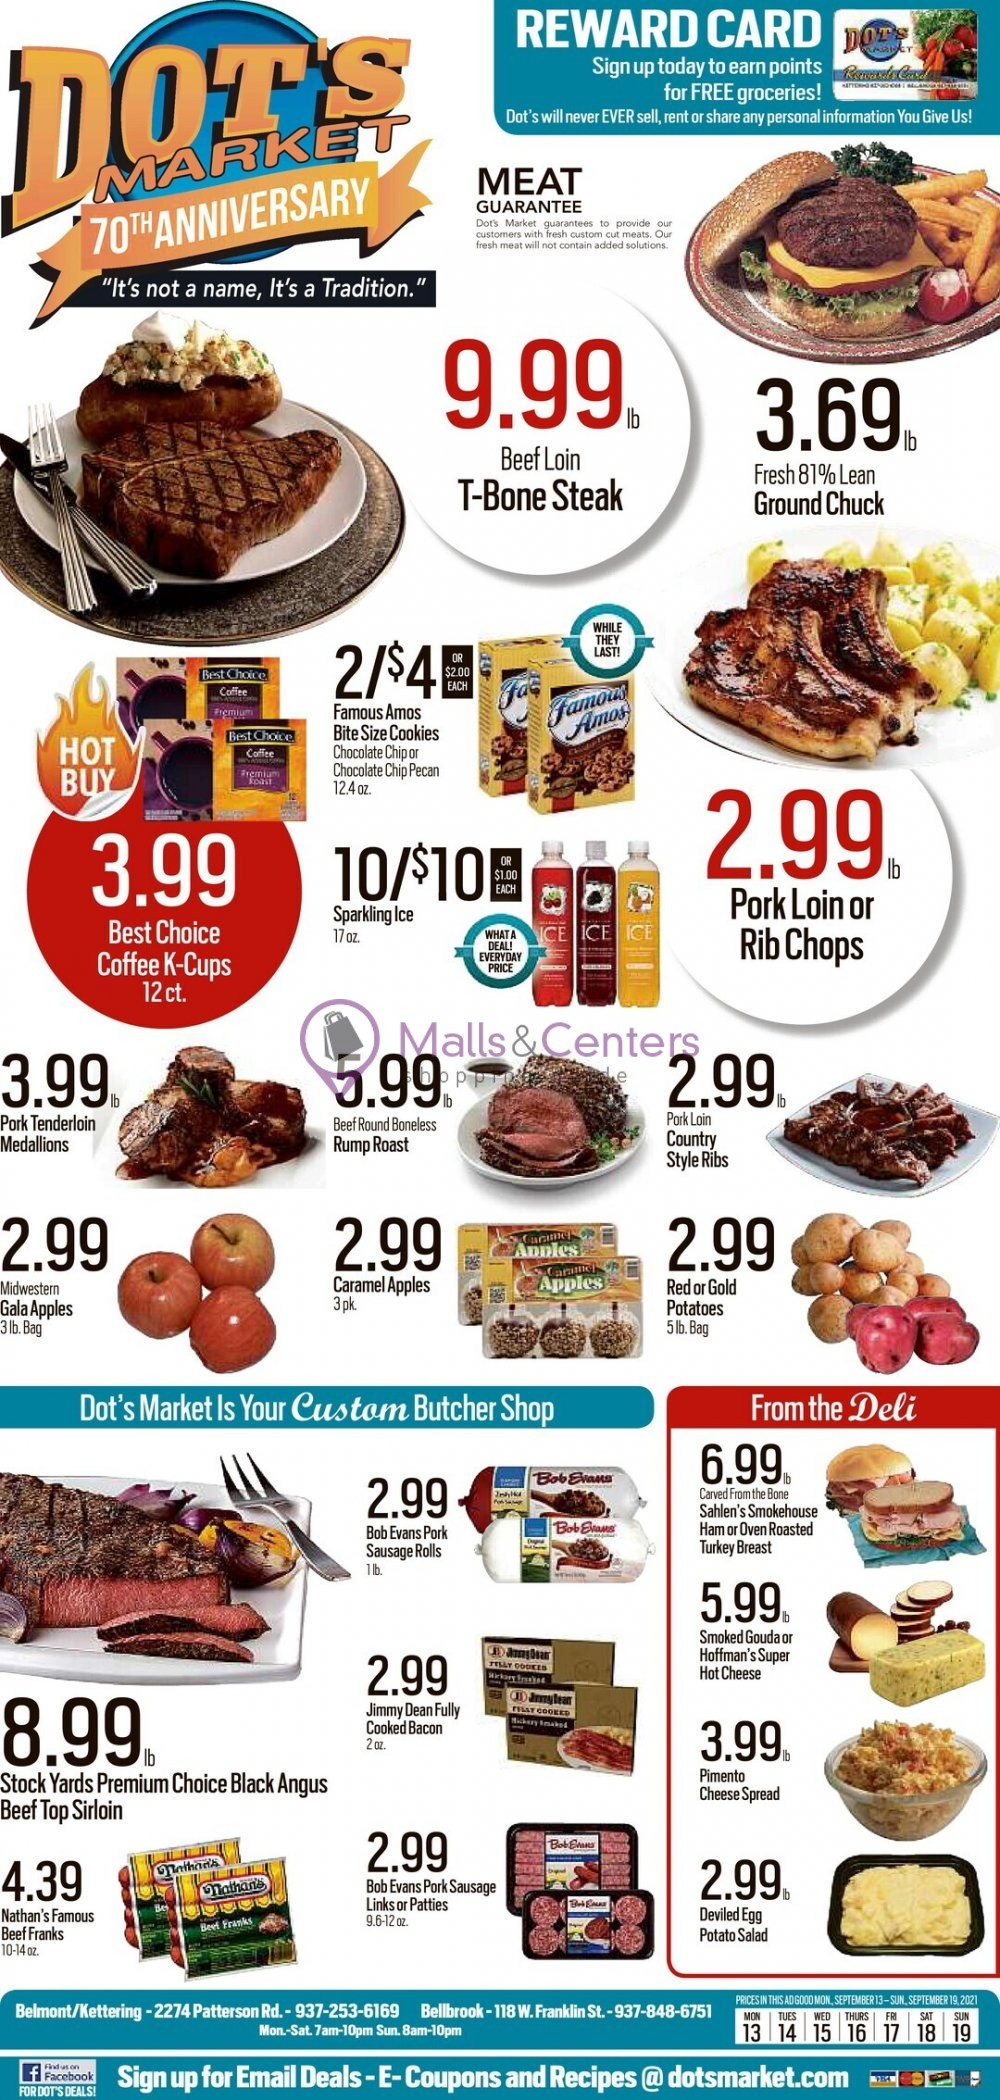 weekly ad Dot's Market - page 1 - mallscenters.com